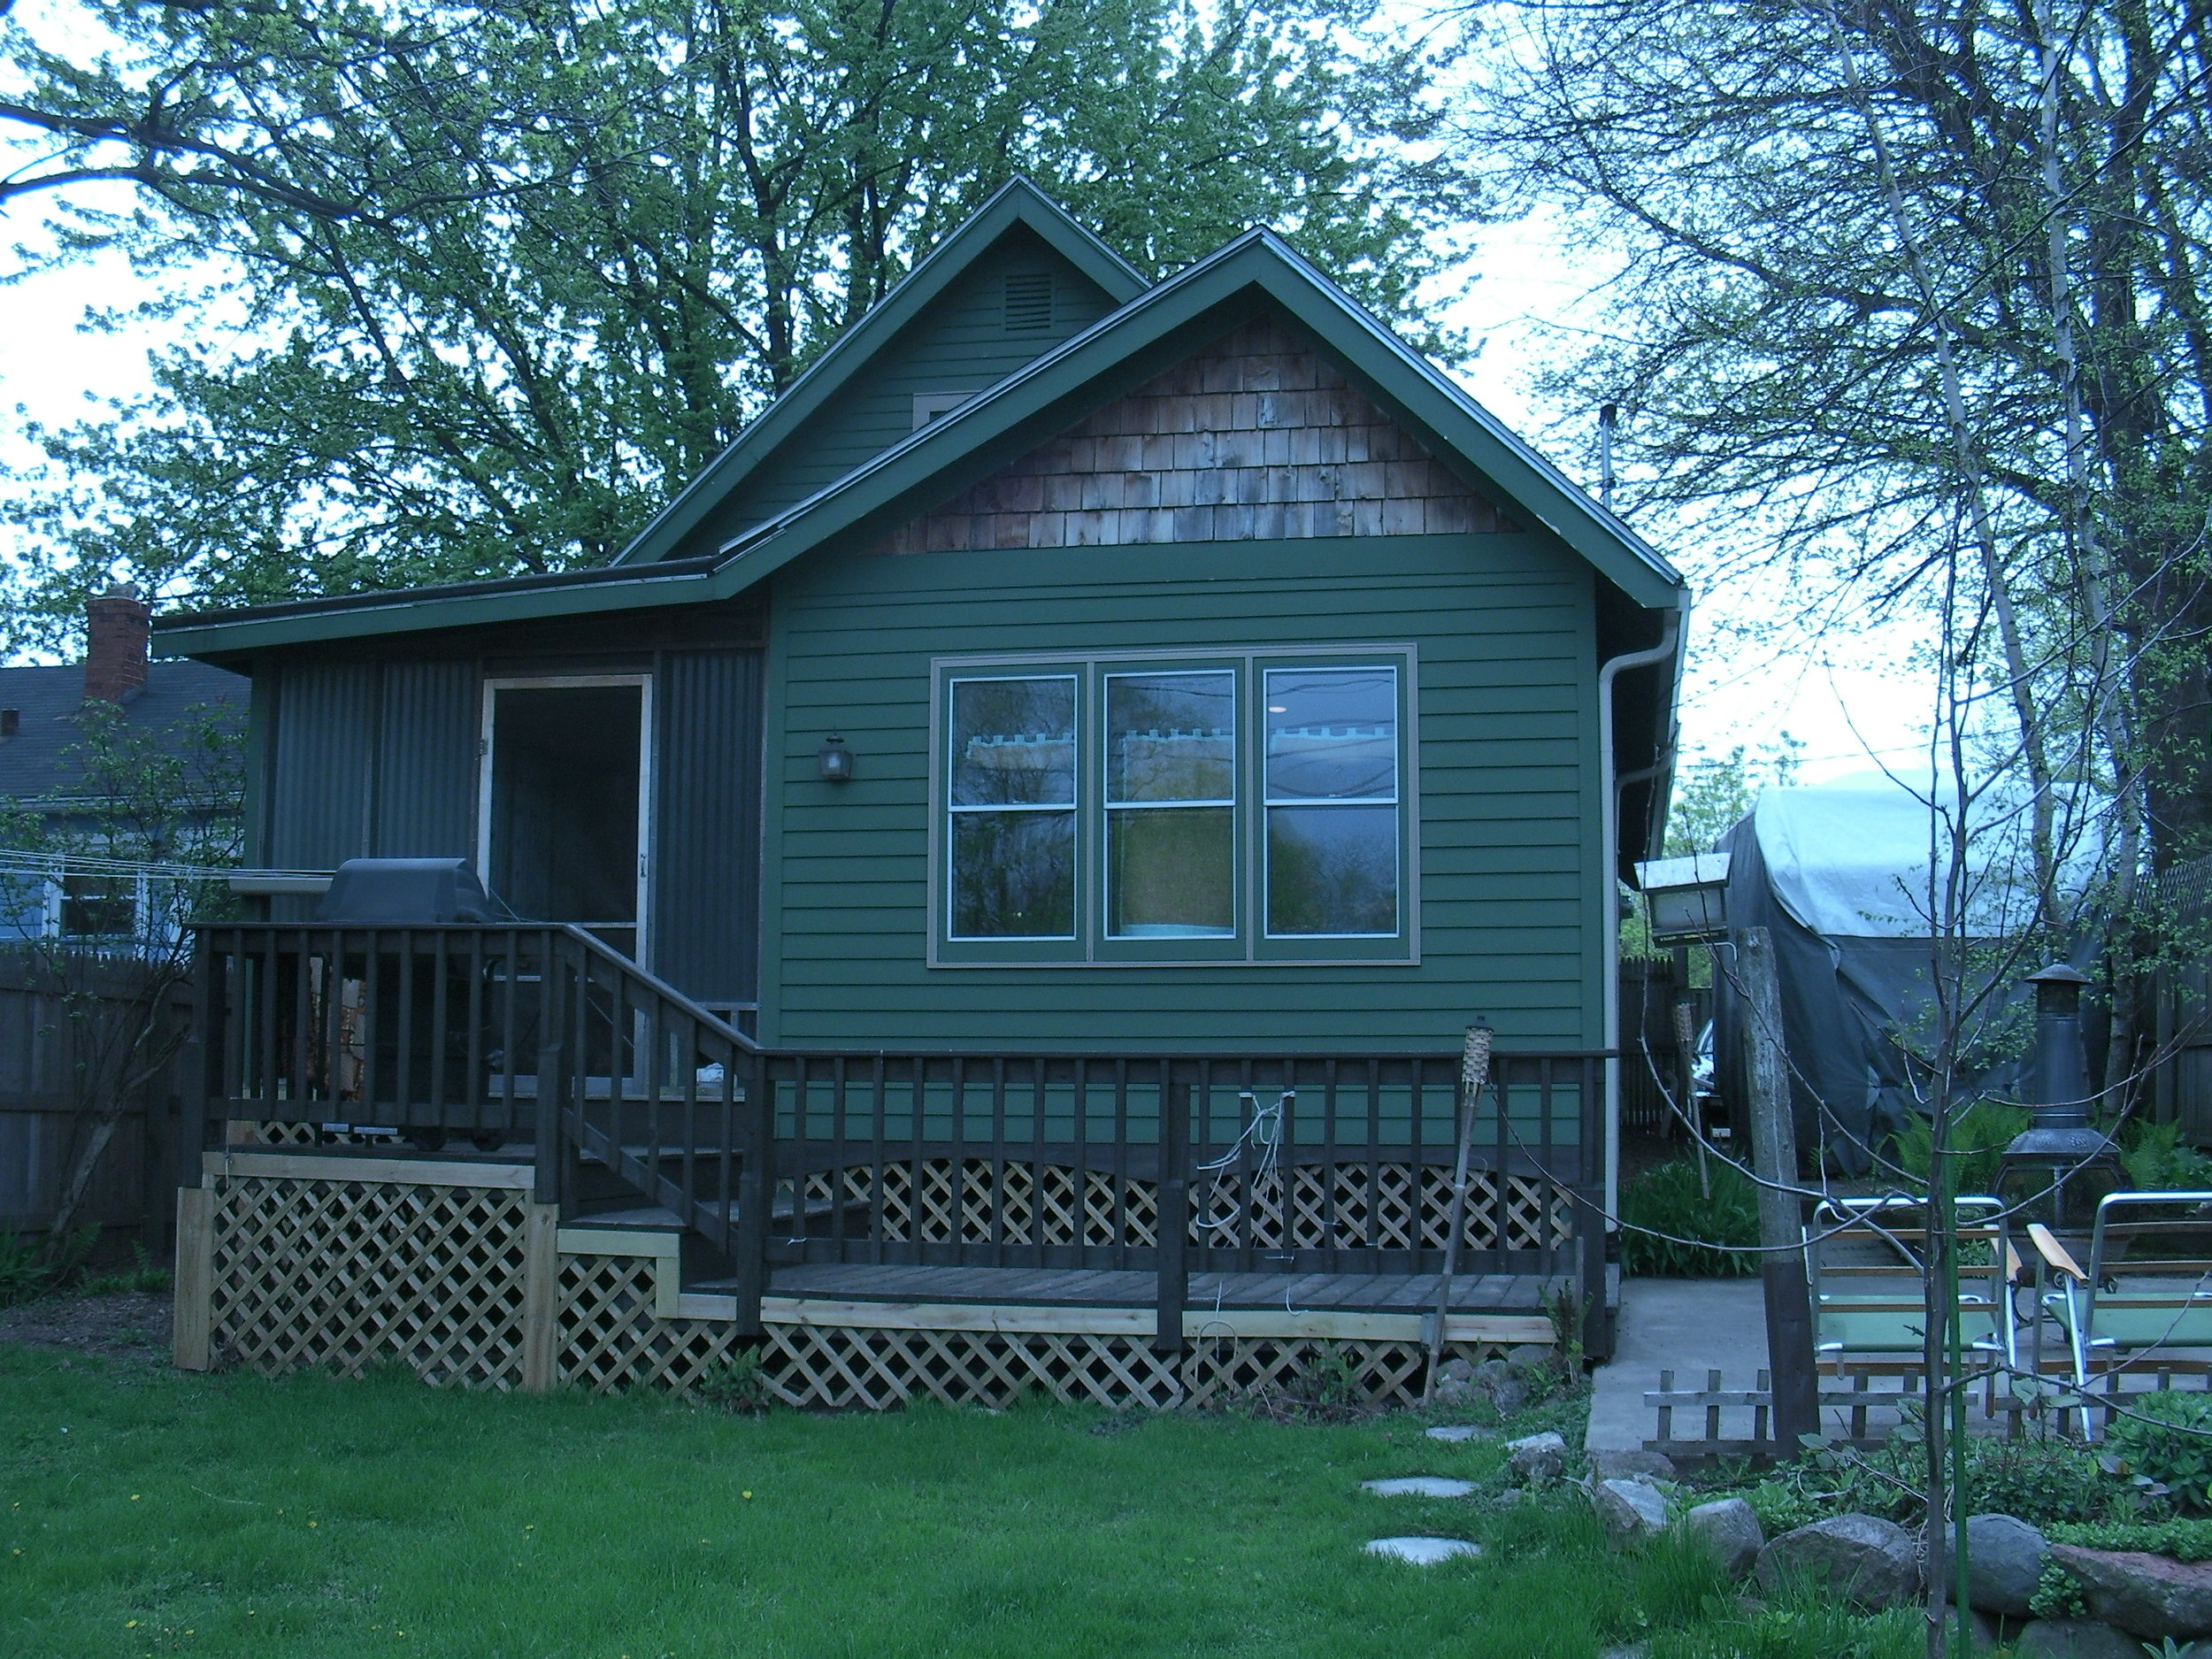 For Sale By Owner Madison Wi >> For Sale By Owner What I D Do Differently Roost Realty